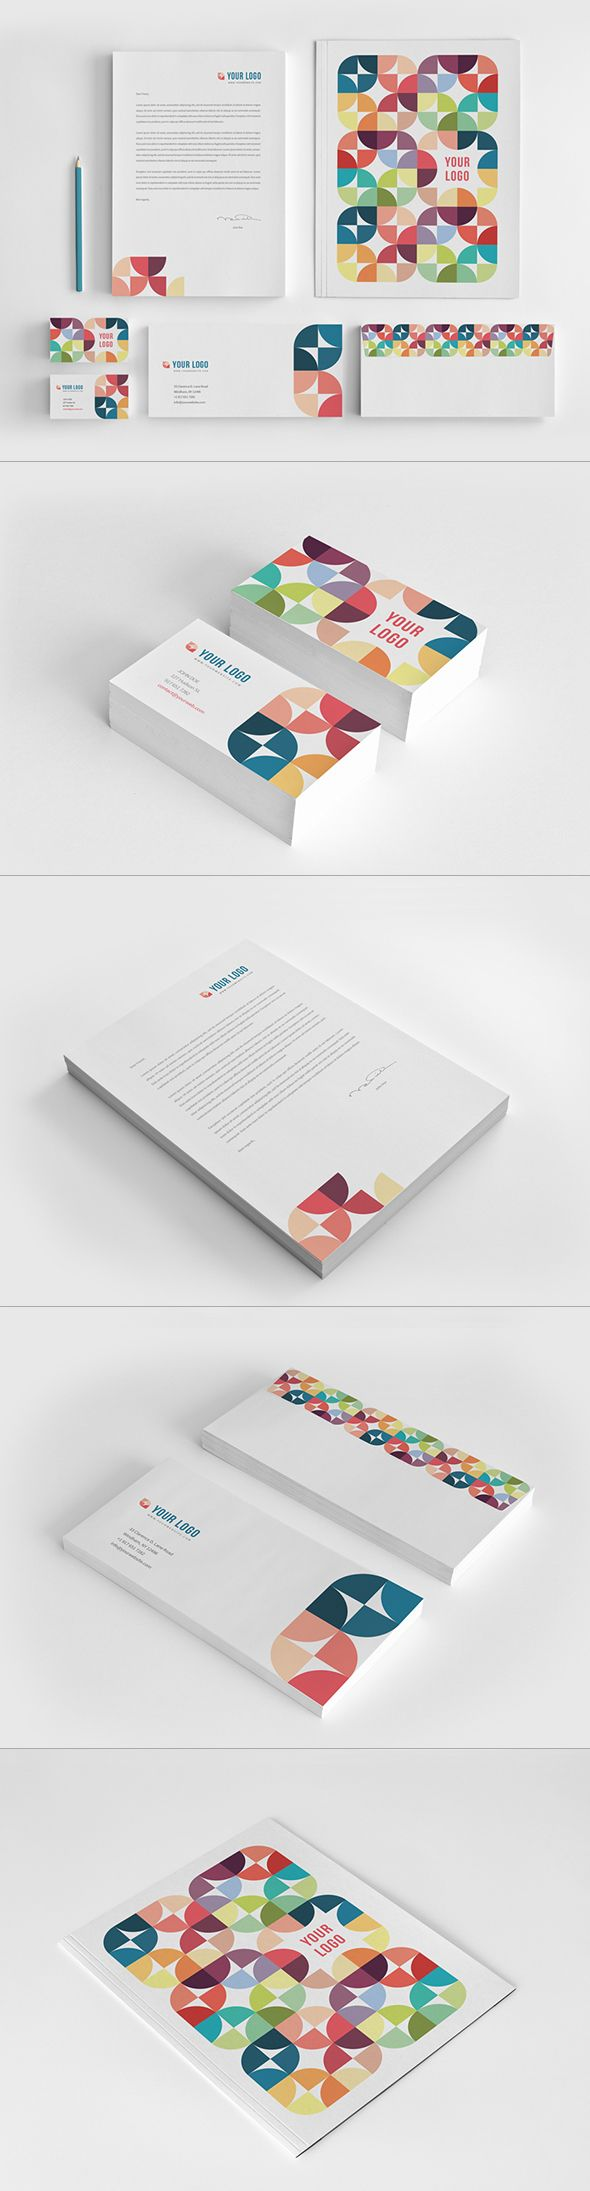 Colorful Circles Pattern Stationery. Download here: http://graphicriver.net/item/colorful-circles-pattern-stationery/10431902?ref=abradesign #design #stationery